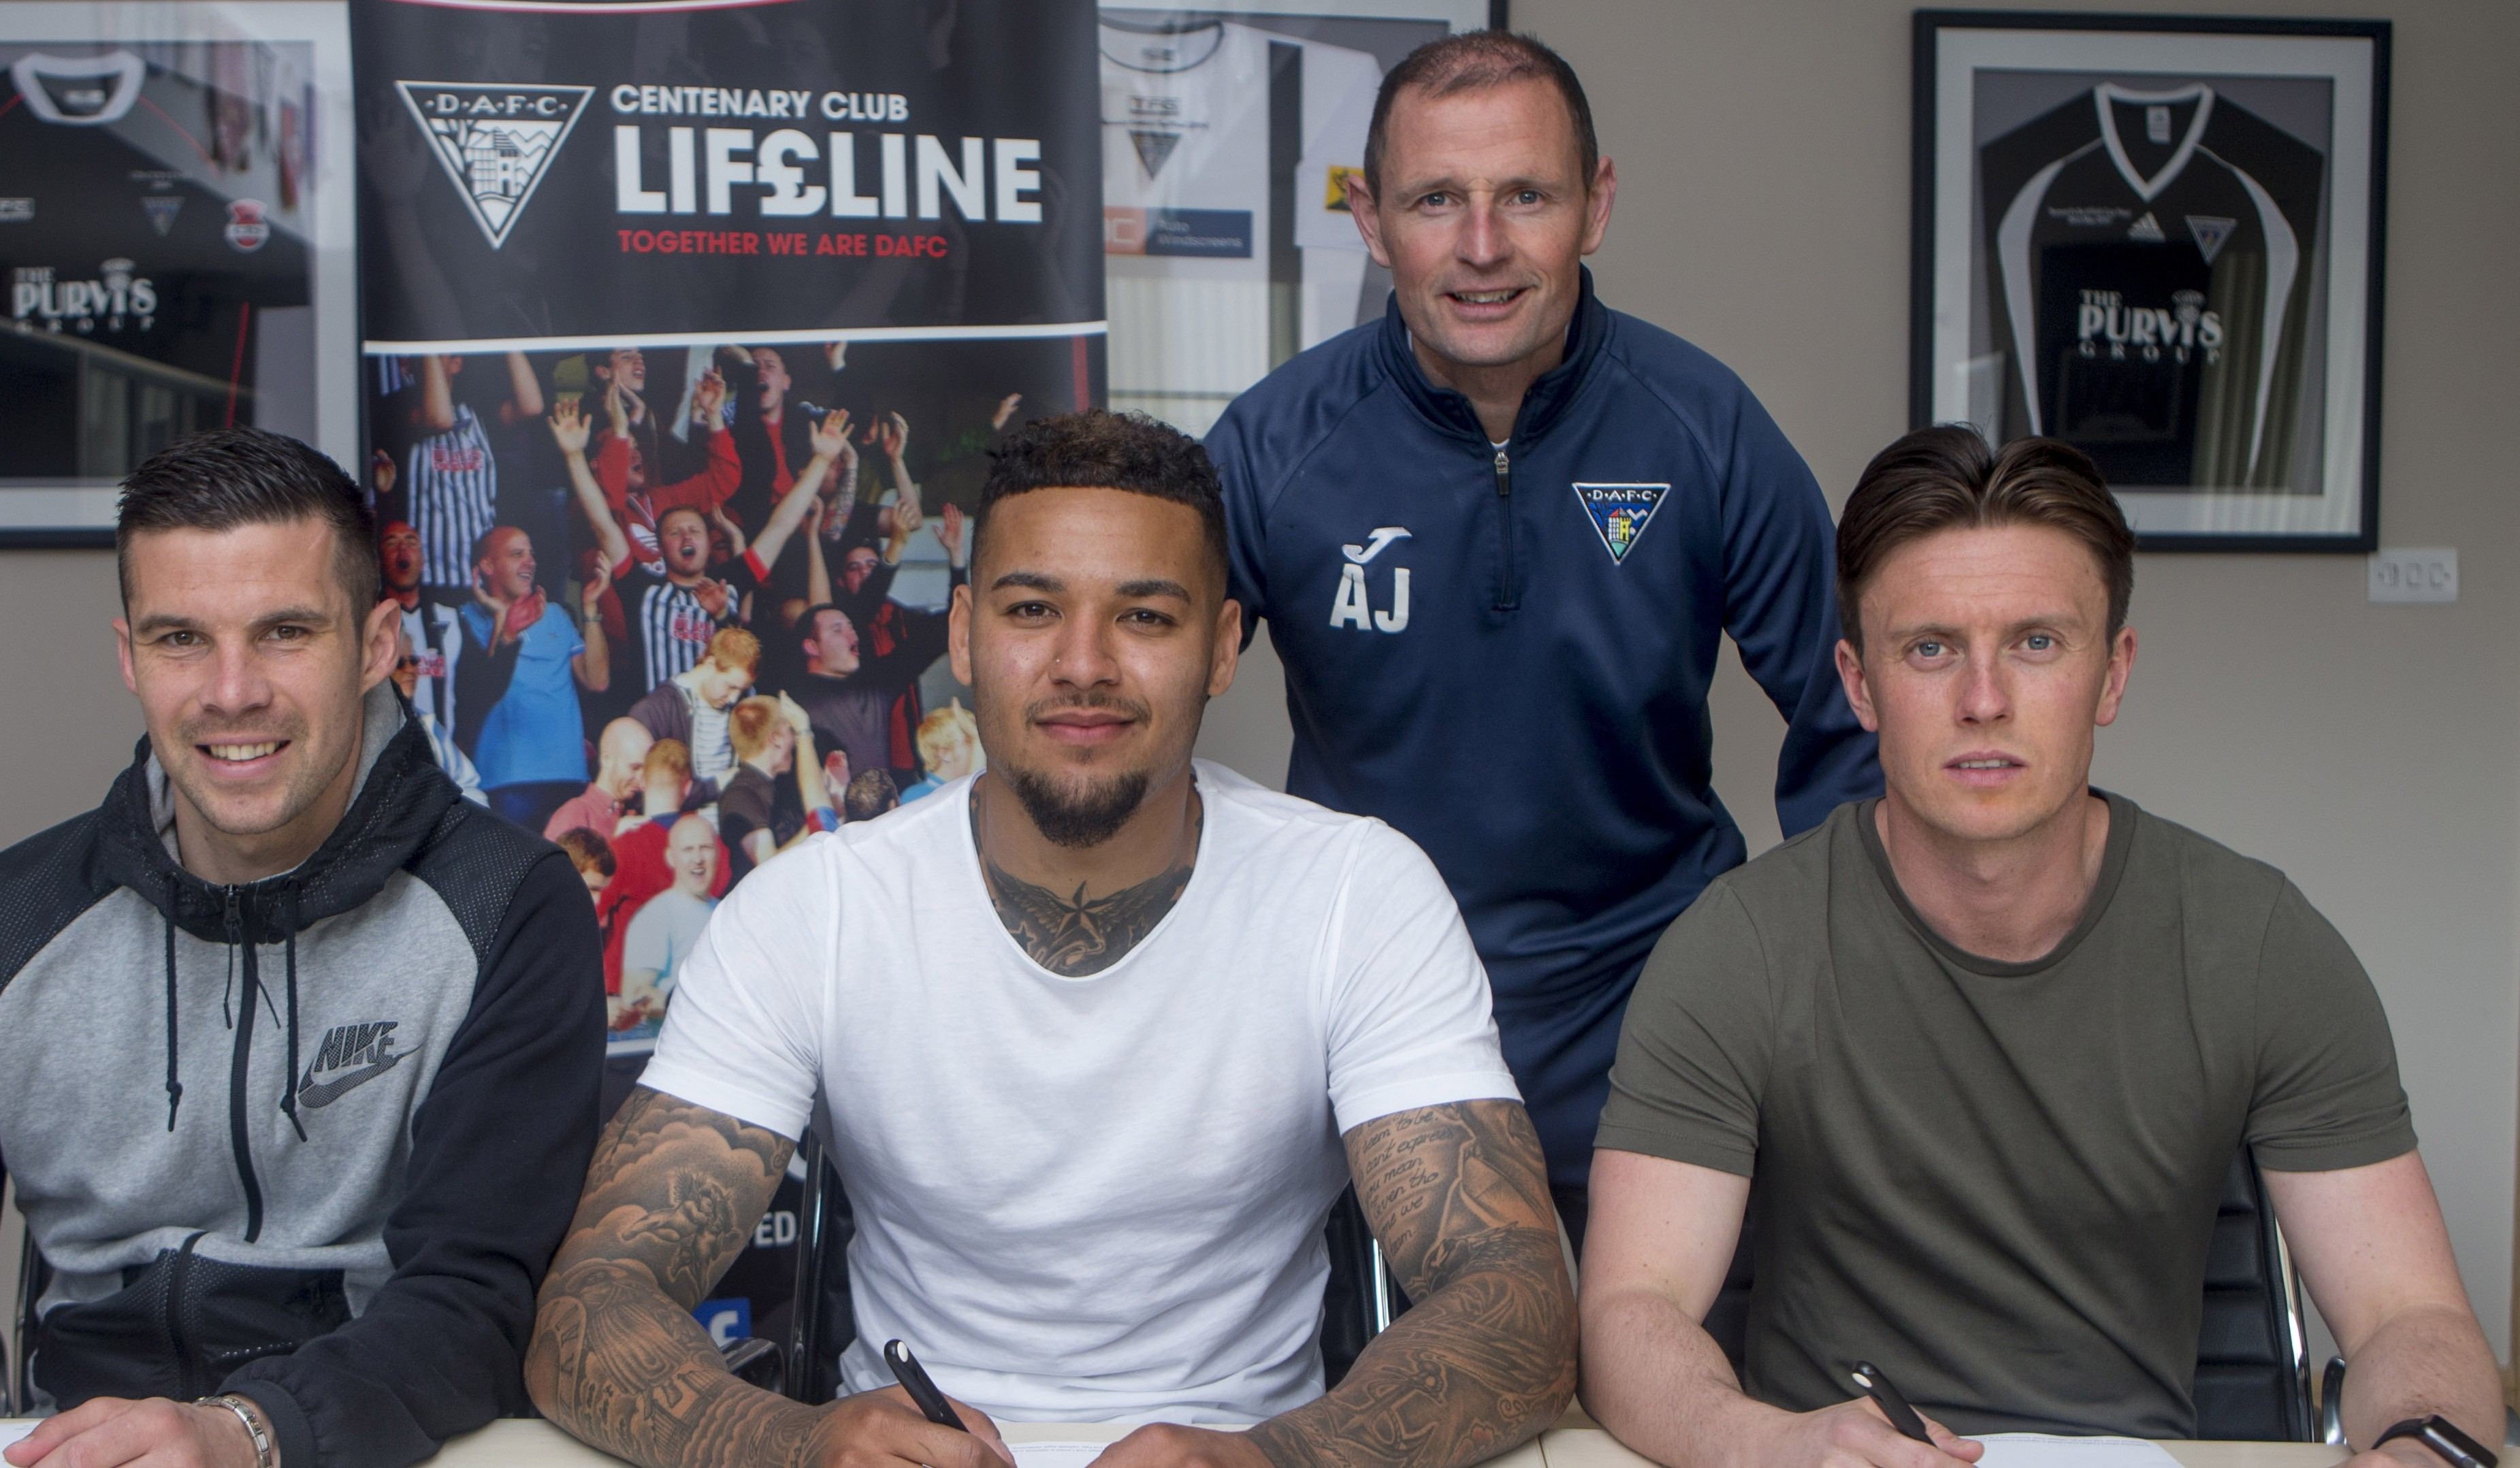 Dunfermline manager Allan Johnston with from left to right, Jason Talbot, Ben Richards-Everton and Joe Cardle.